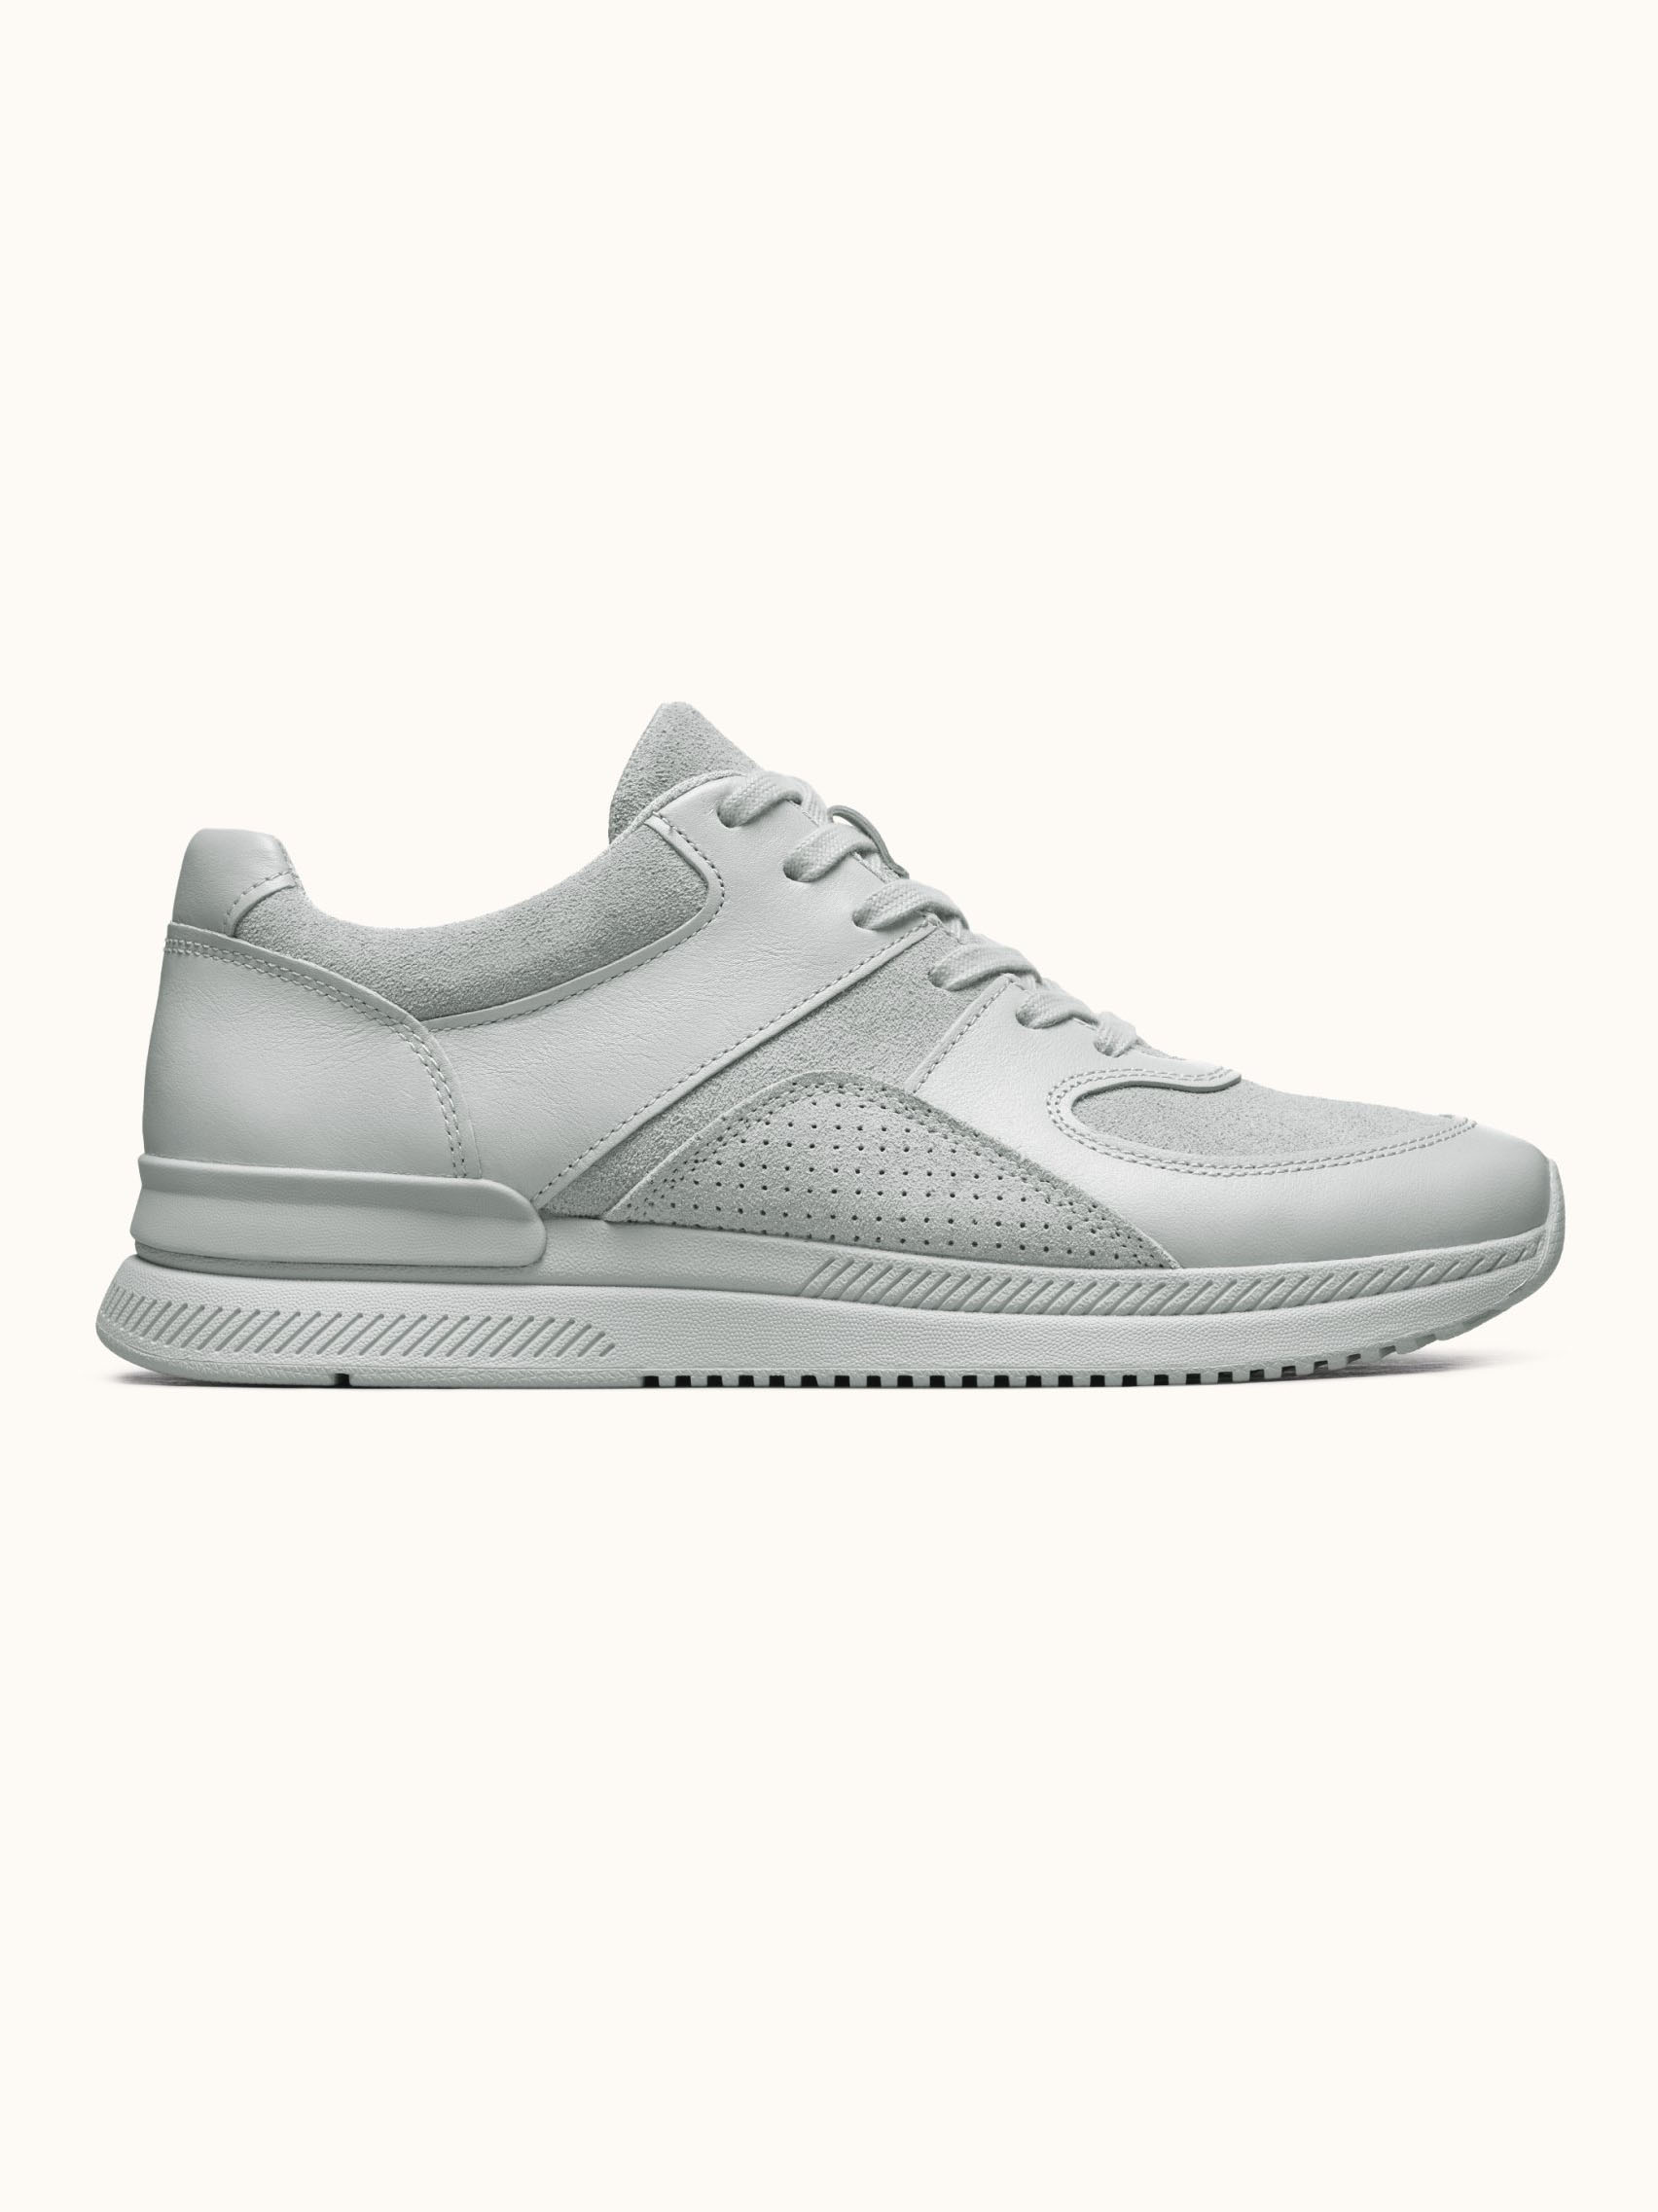 Father's Day Gift Guide // The Trainer Sneakers - Everlane